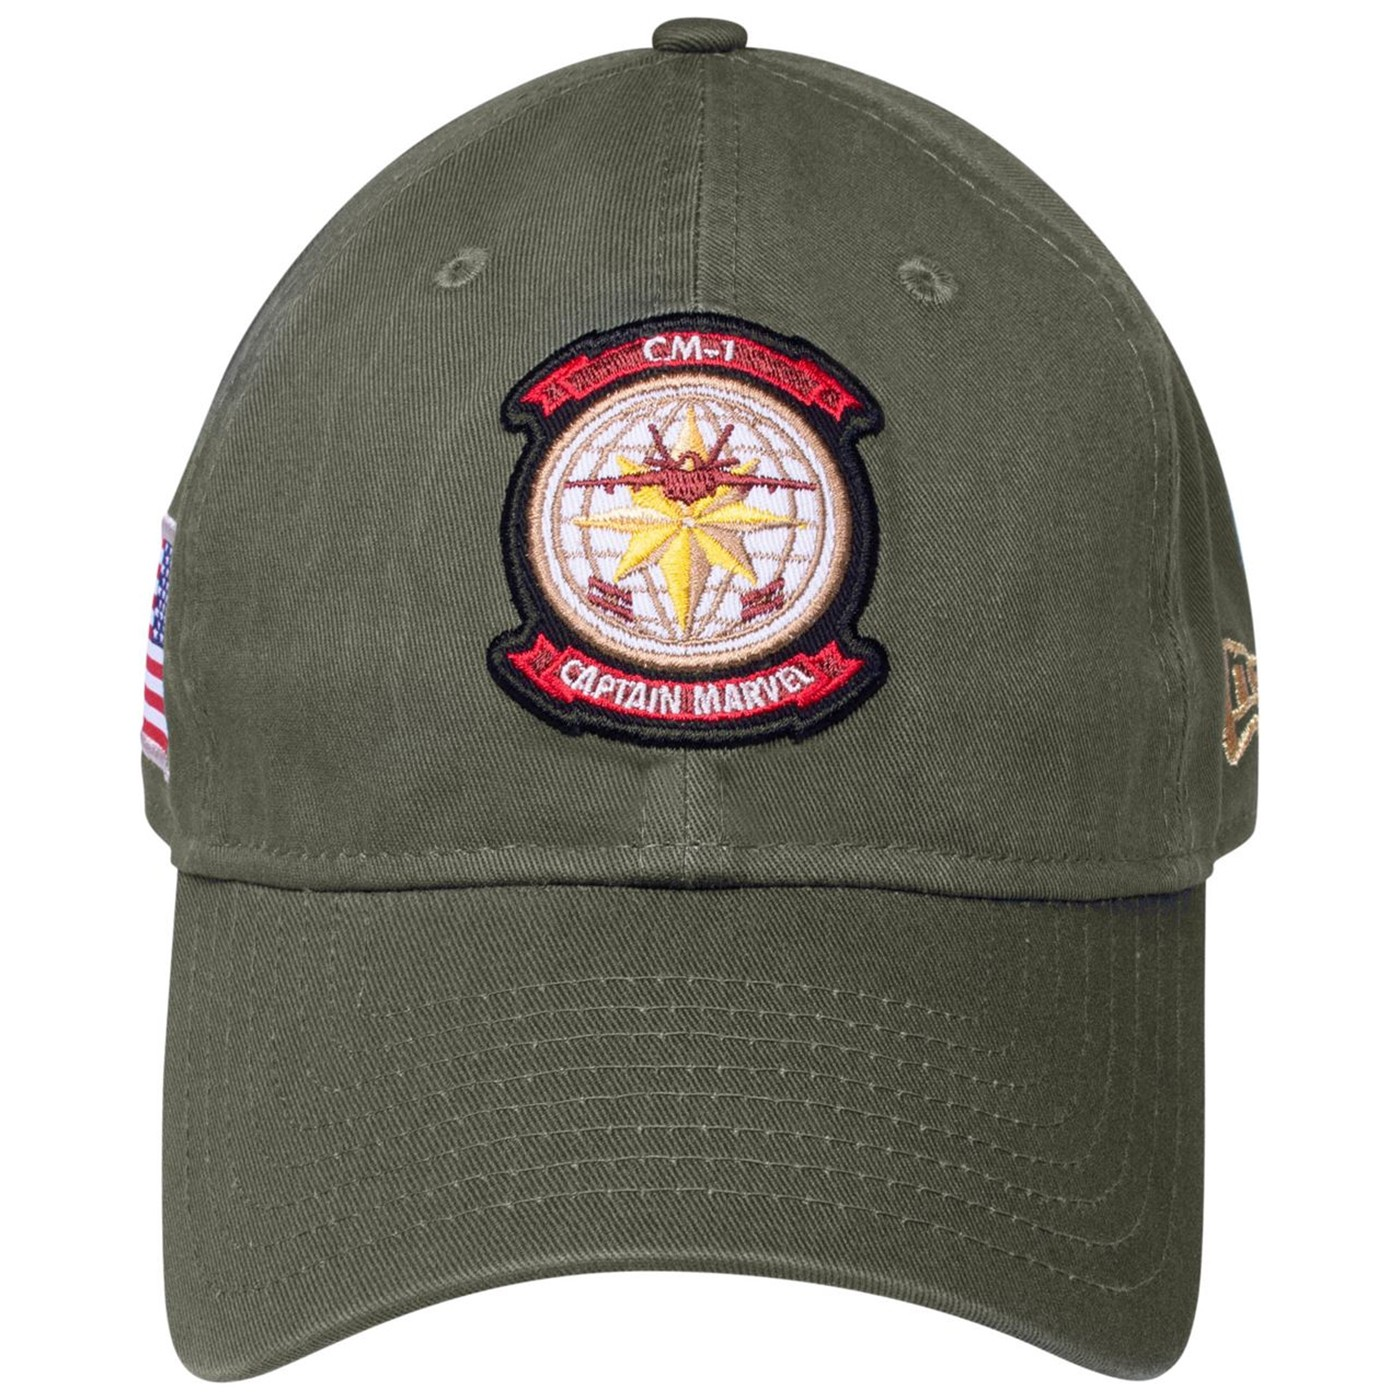 Captain Marvel Air Force Pilot 9Twenty Adjustable New Era Hat